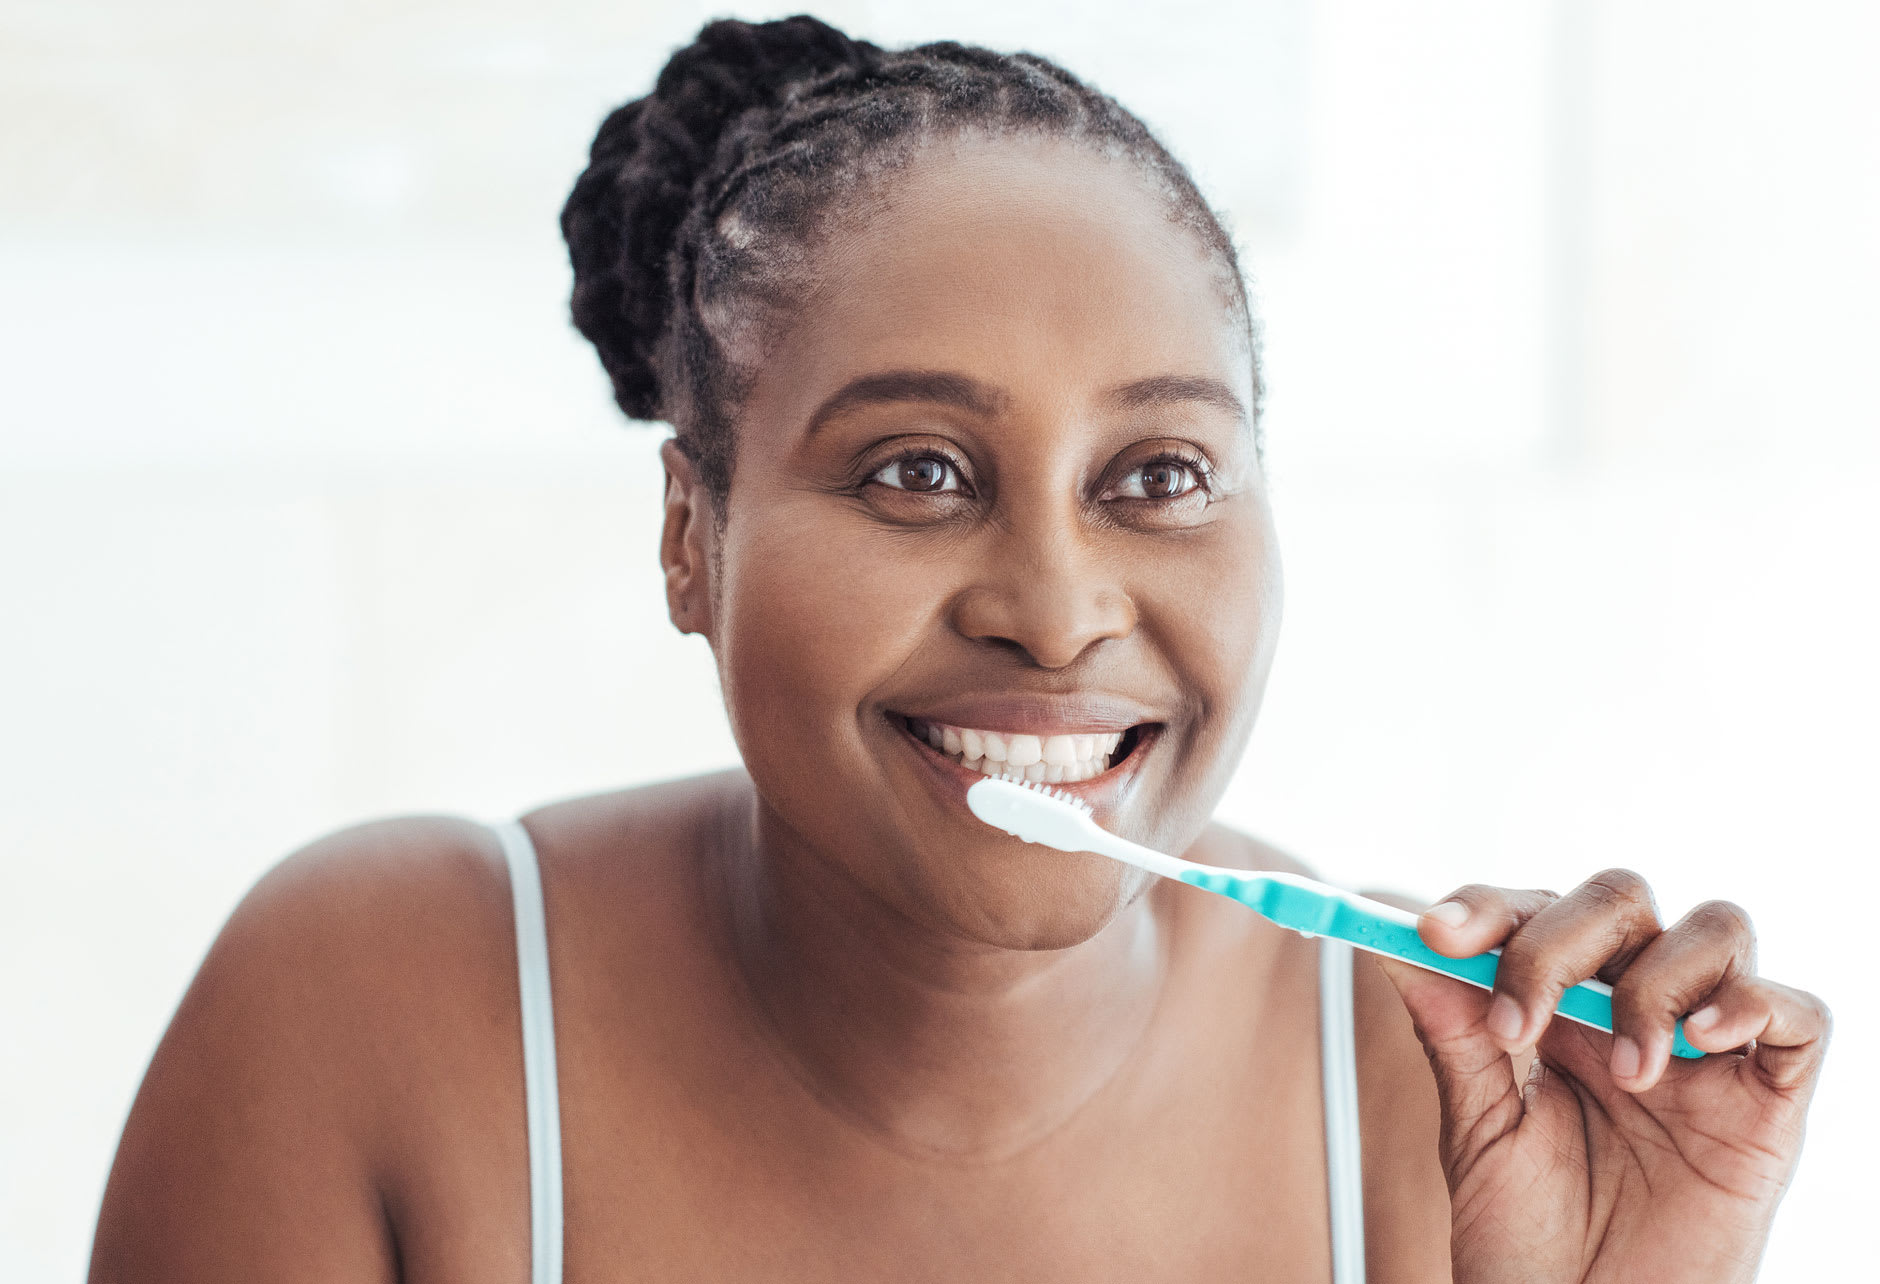 A woman in her 30s is smiling as she holds a toothbrush pretending to brush her teeth, thanks to Fixodent she knows how to remove tartar from dentures and that she needs to remove her dentures first.